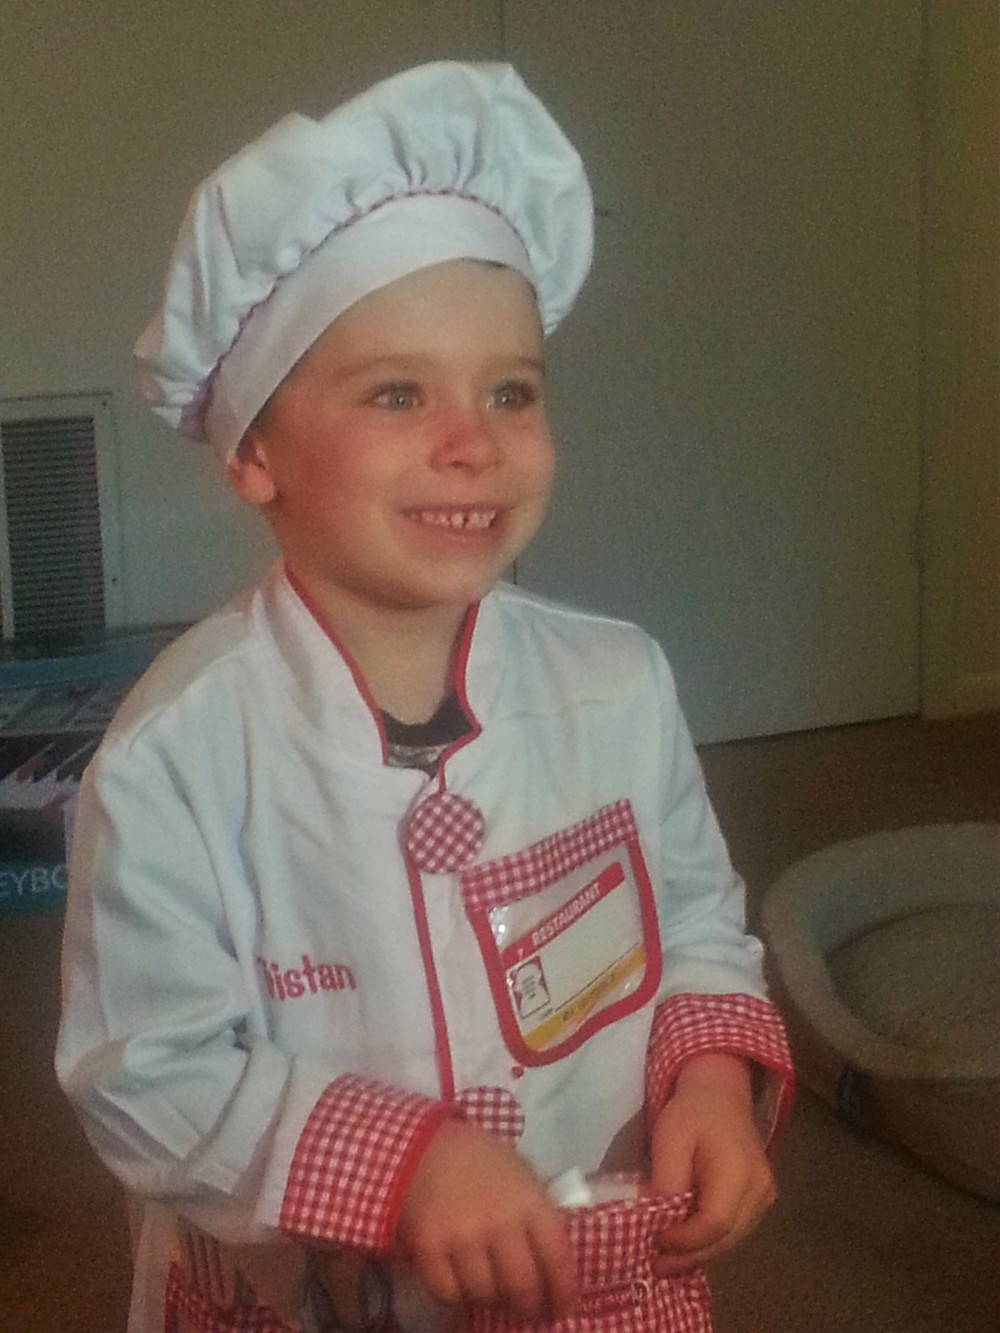 OUR YOUNGEST FAN AND FUTURE BAKER!